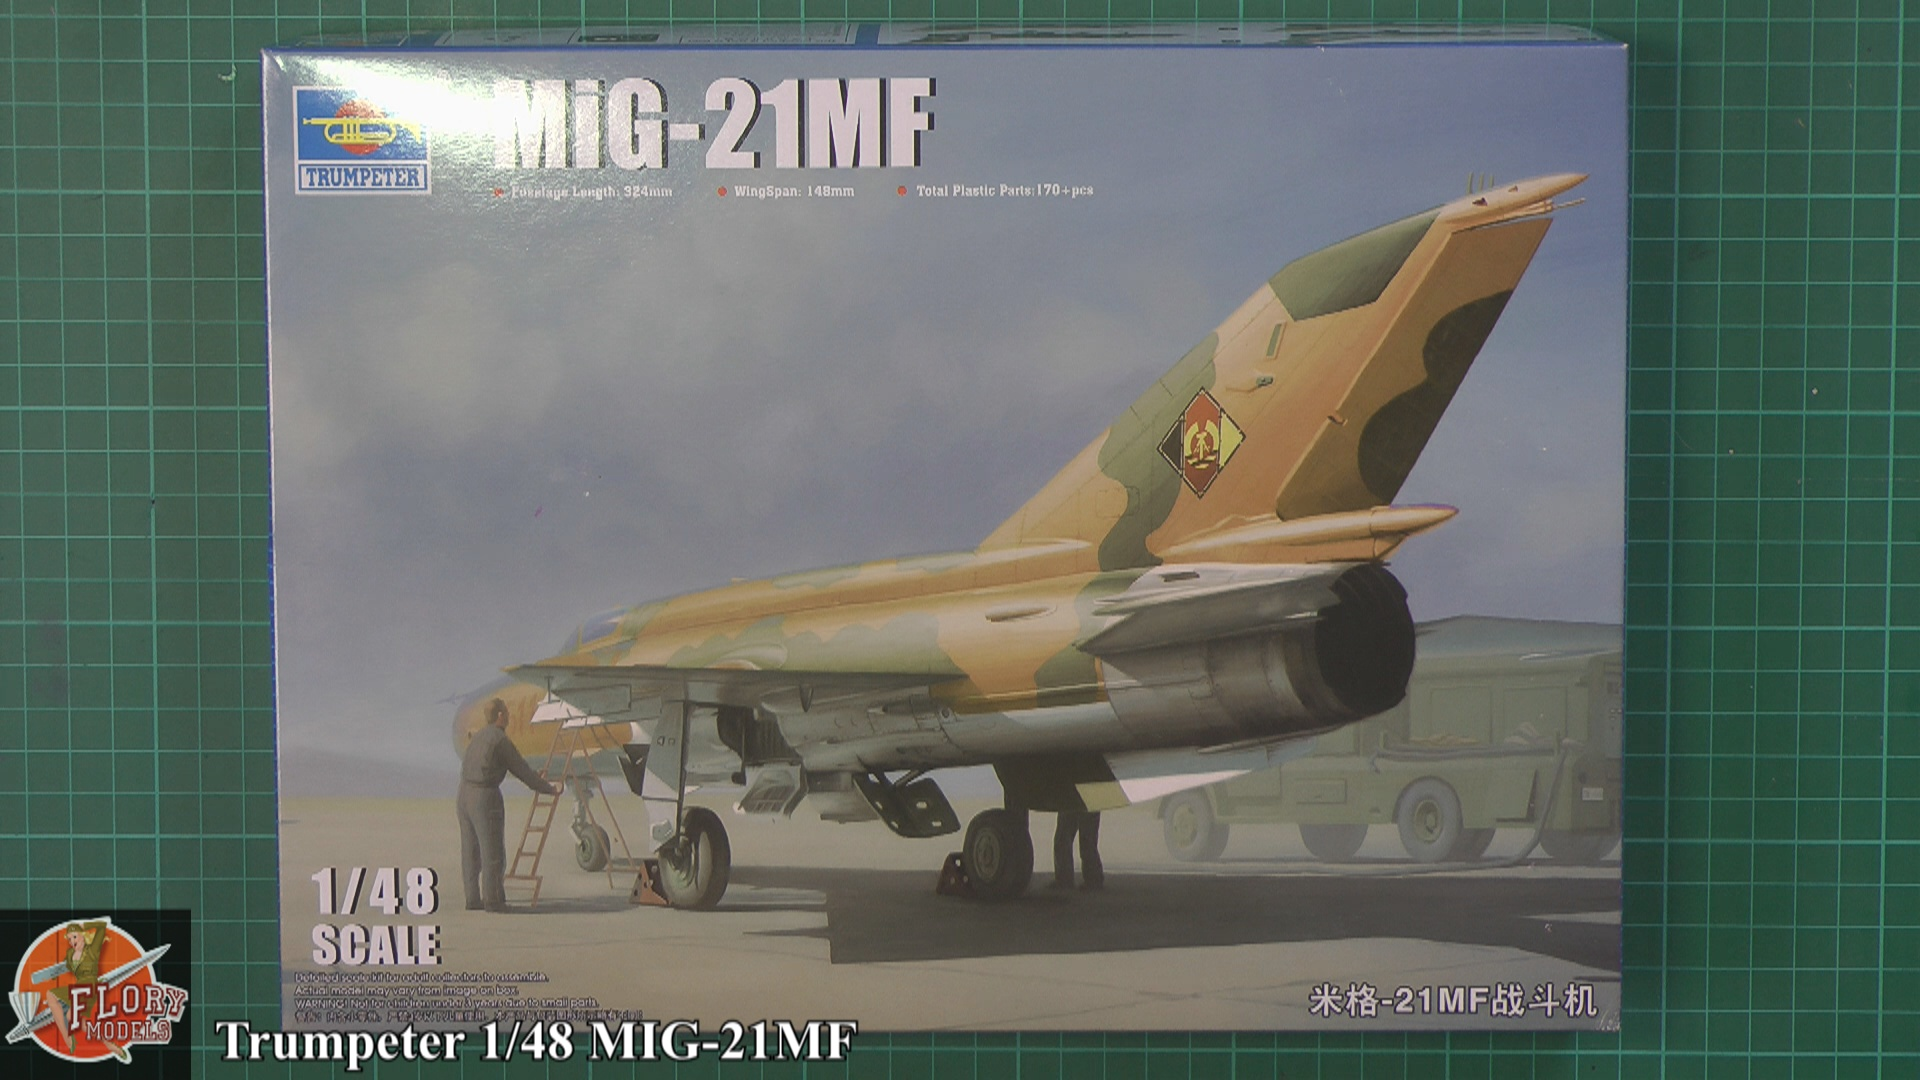 MIG-21MF Scale: 1/48   Manufacture: Trumpeter   Parts used: Out Of the Box In flight display   Main paints used: Vellejo